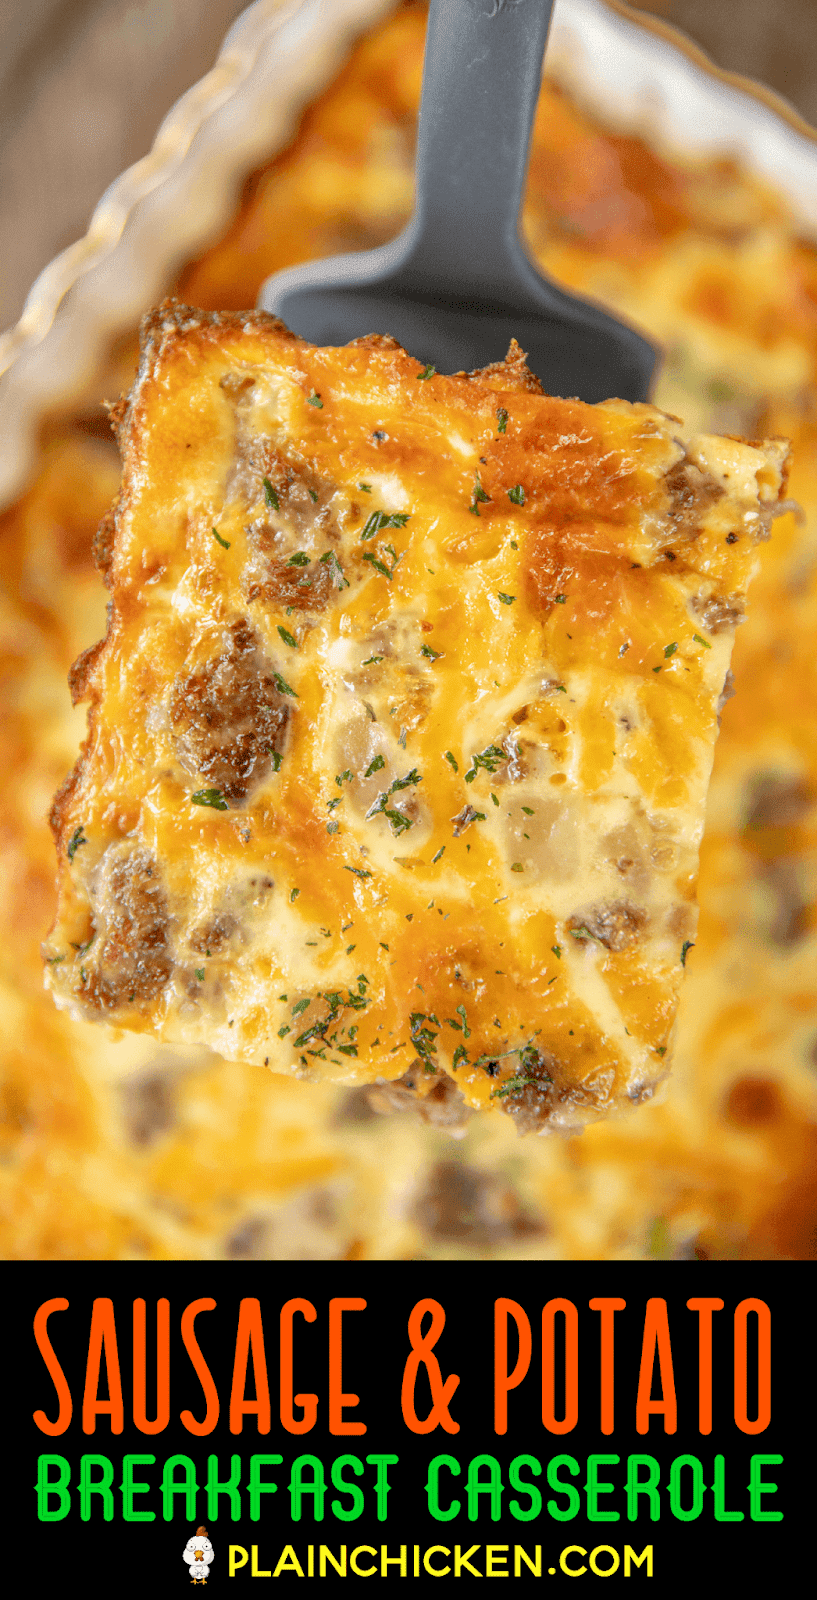 slice of breakfast casserole on spatula